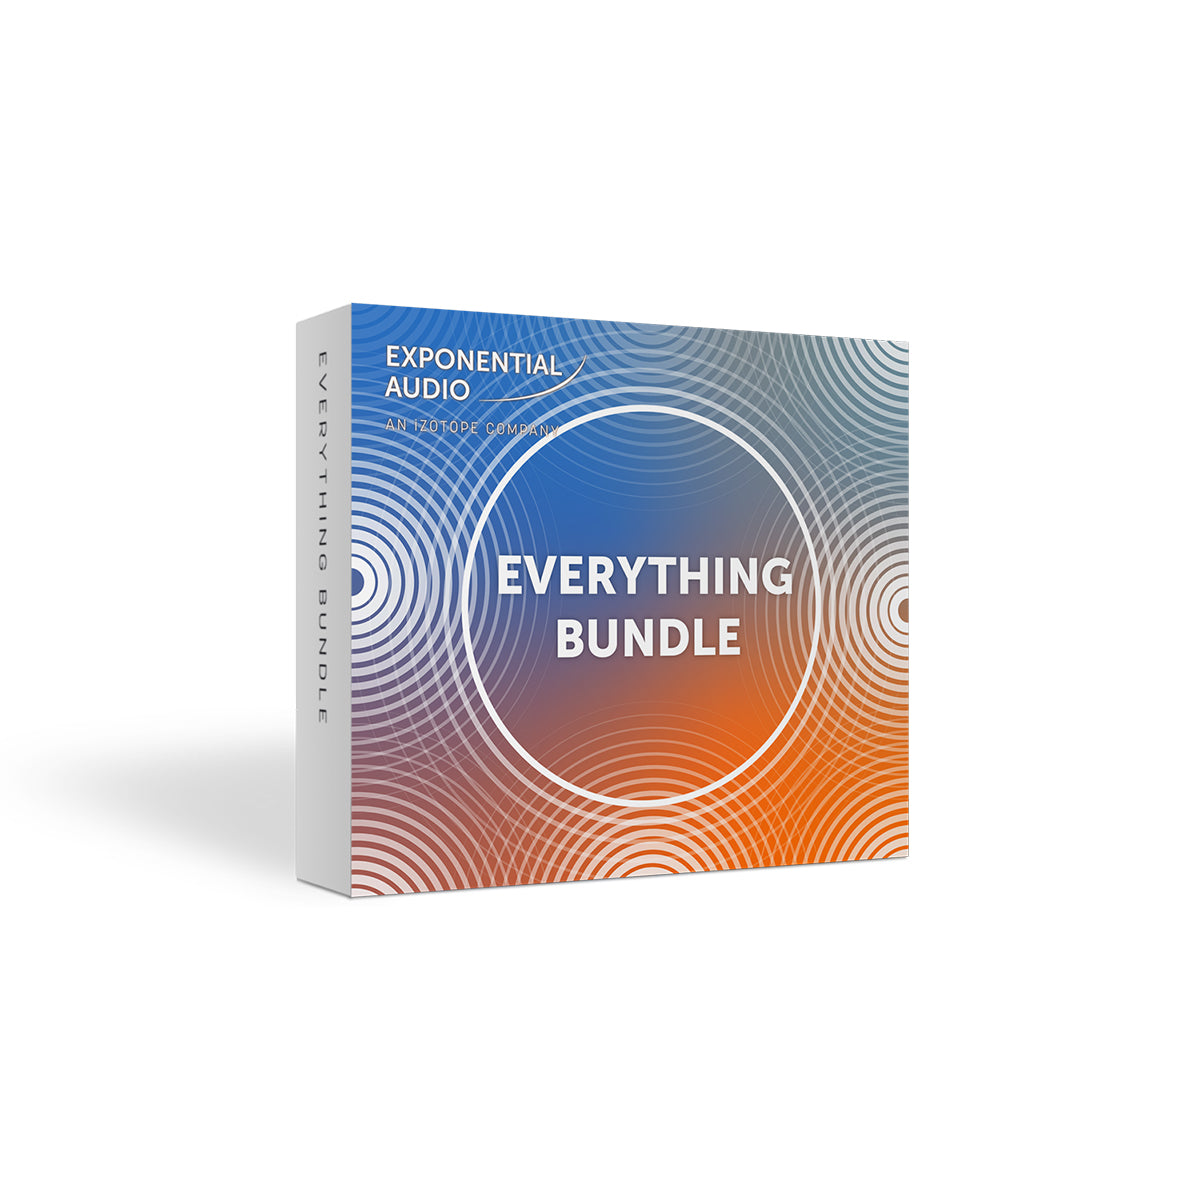 Exponential Audio Everything Bundle